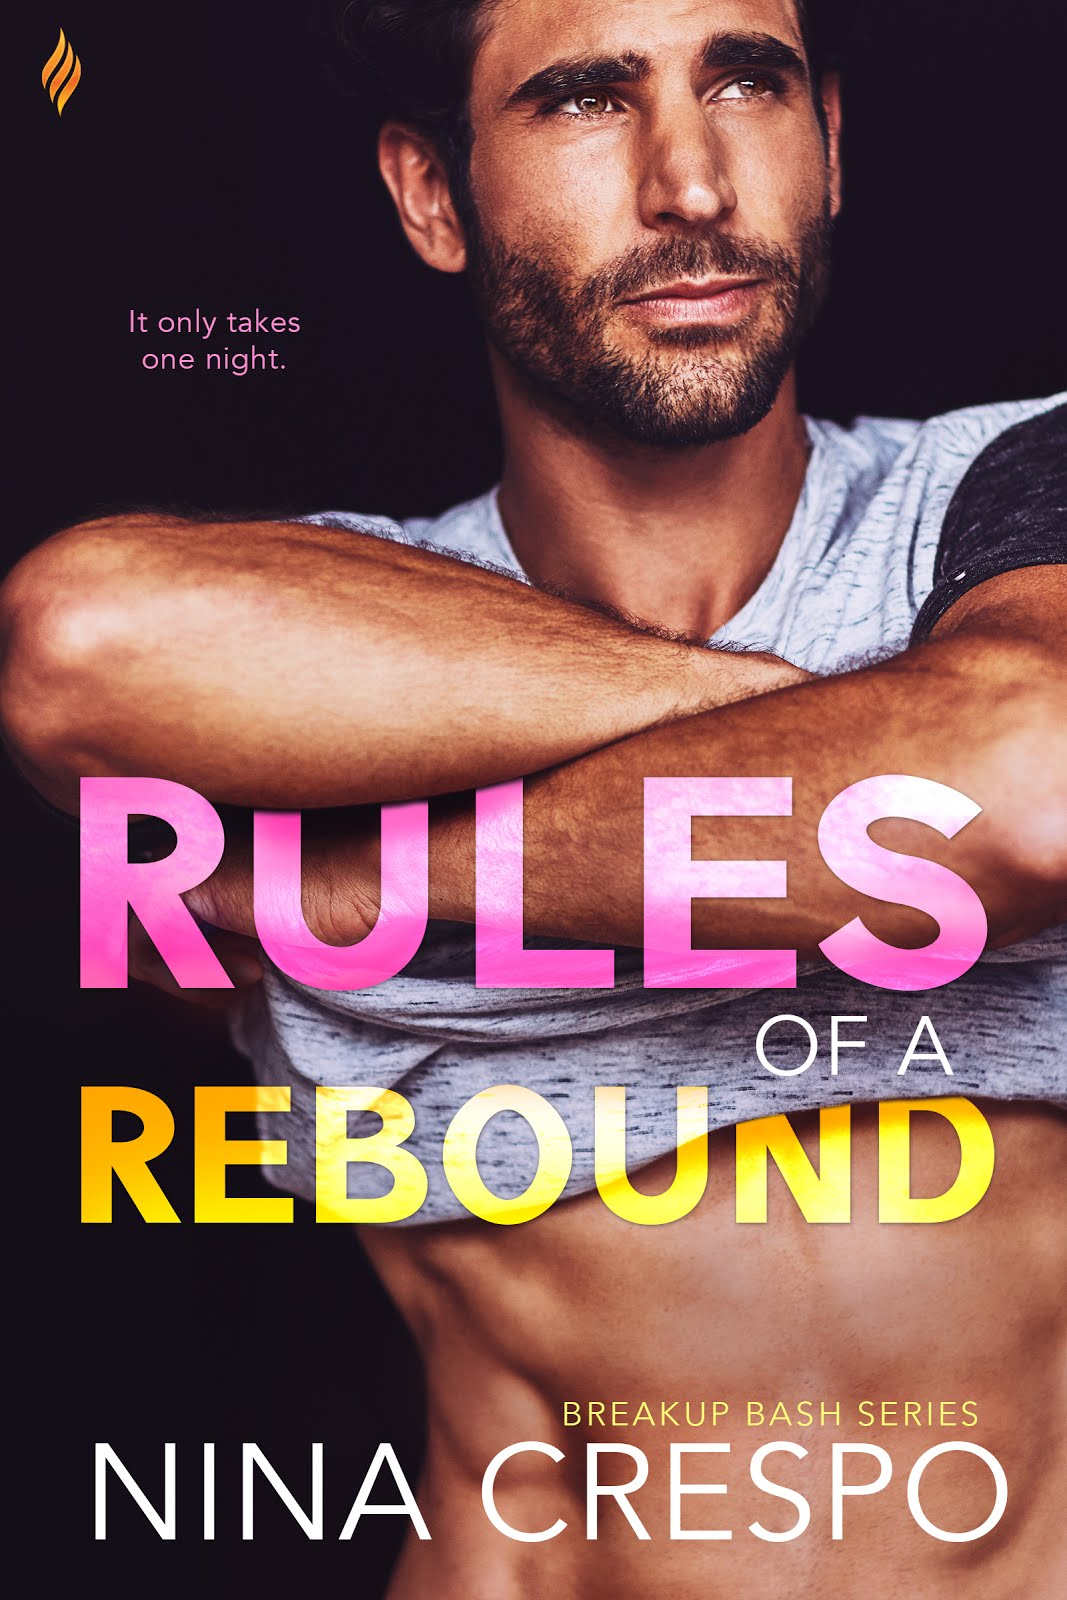 It only takes one night | Rules of a Rebound @ninacrespo21 ...